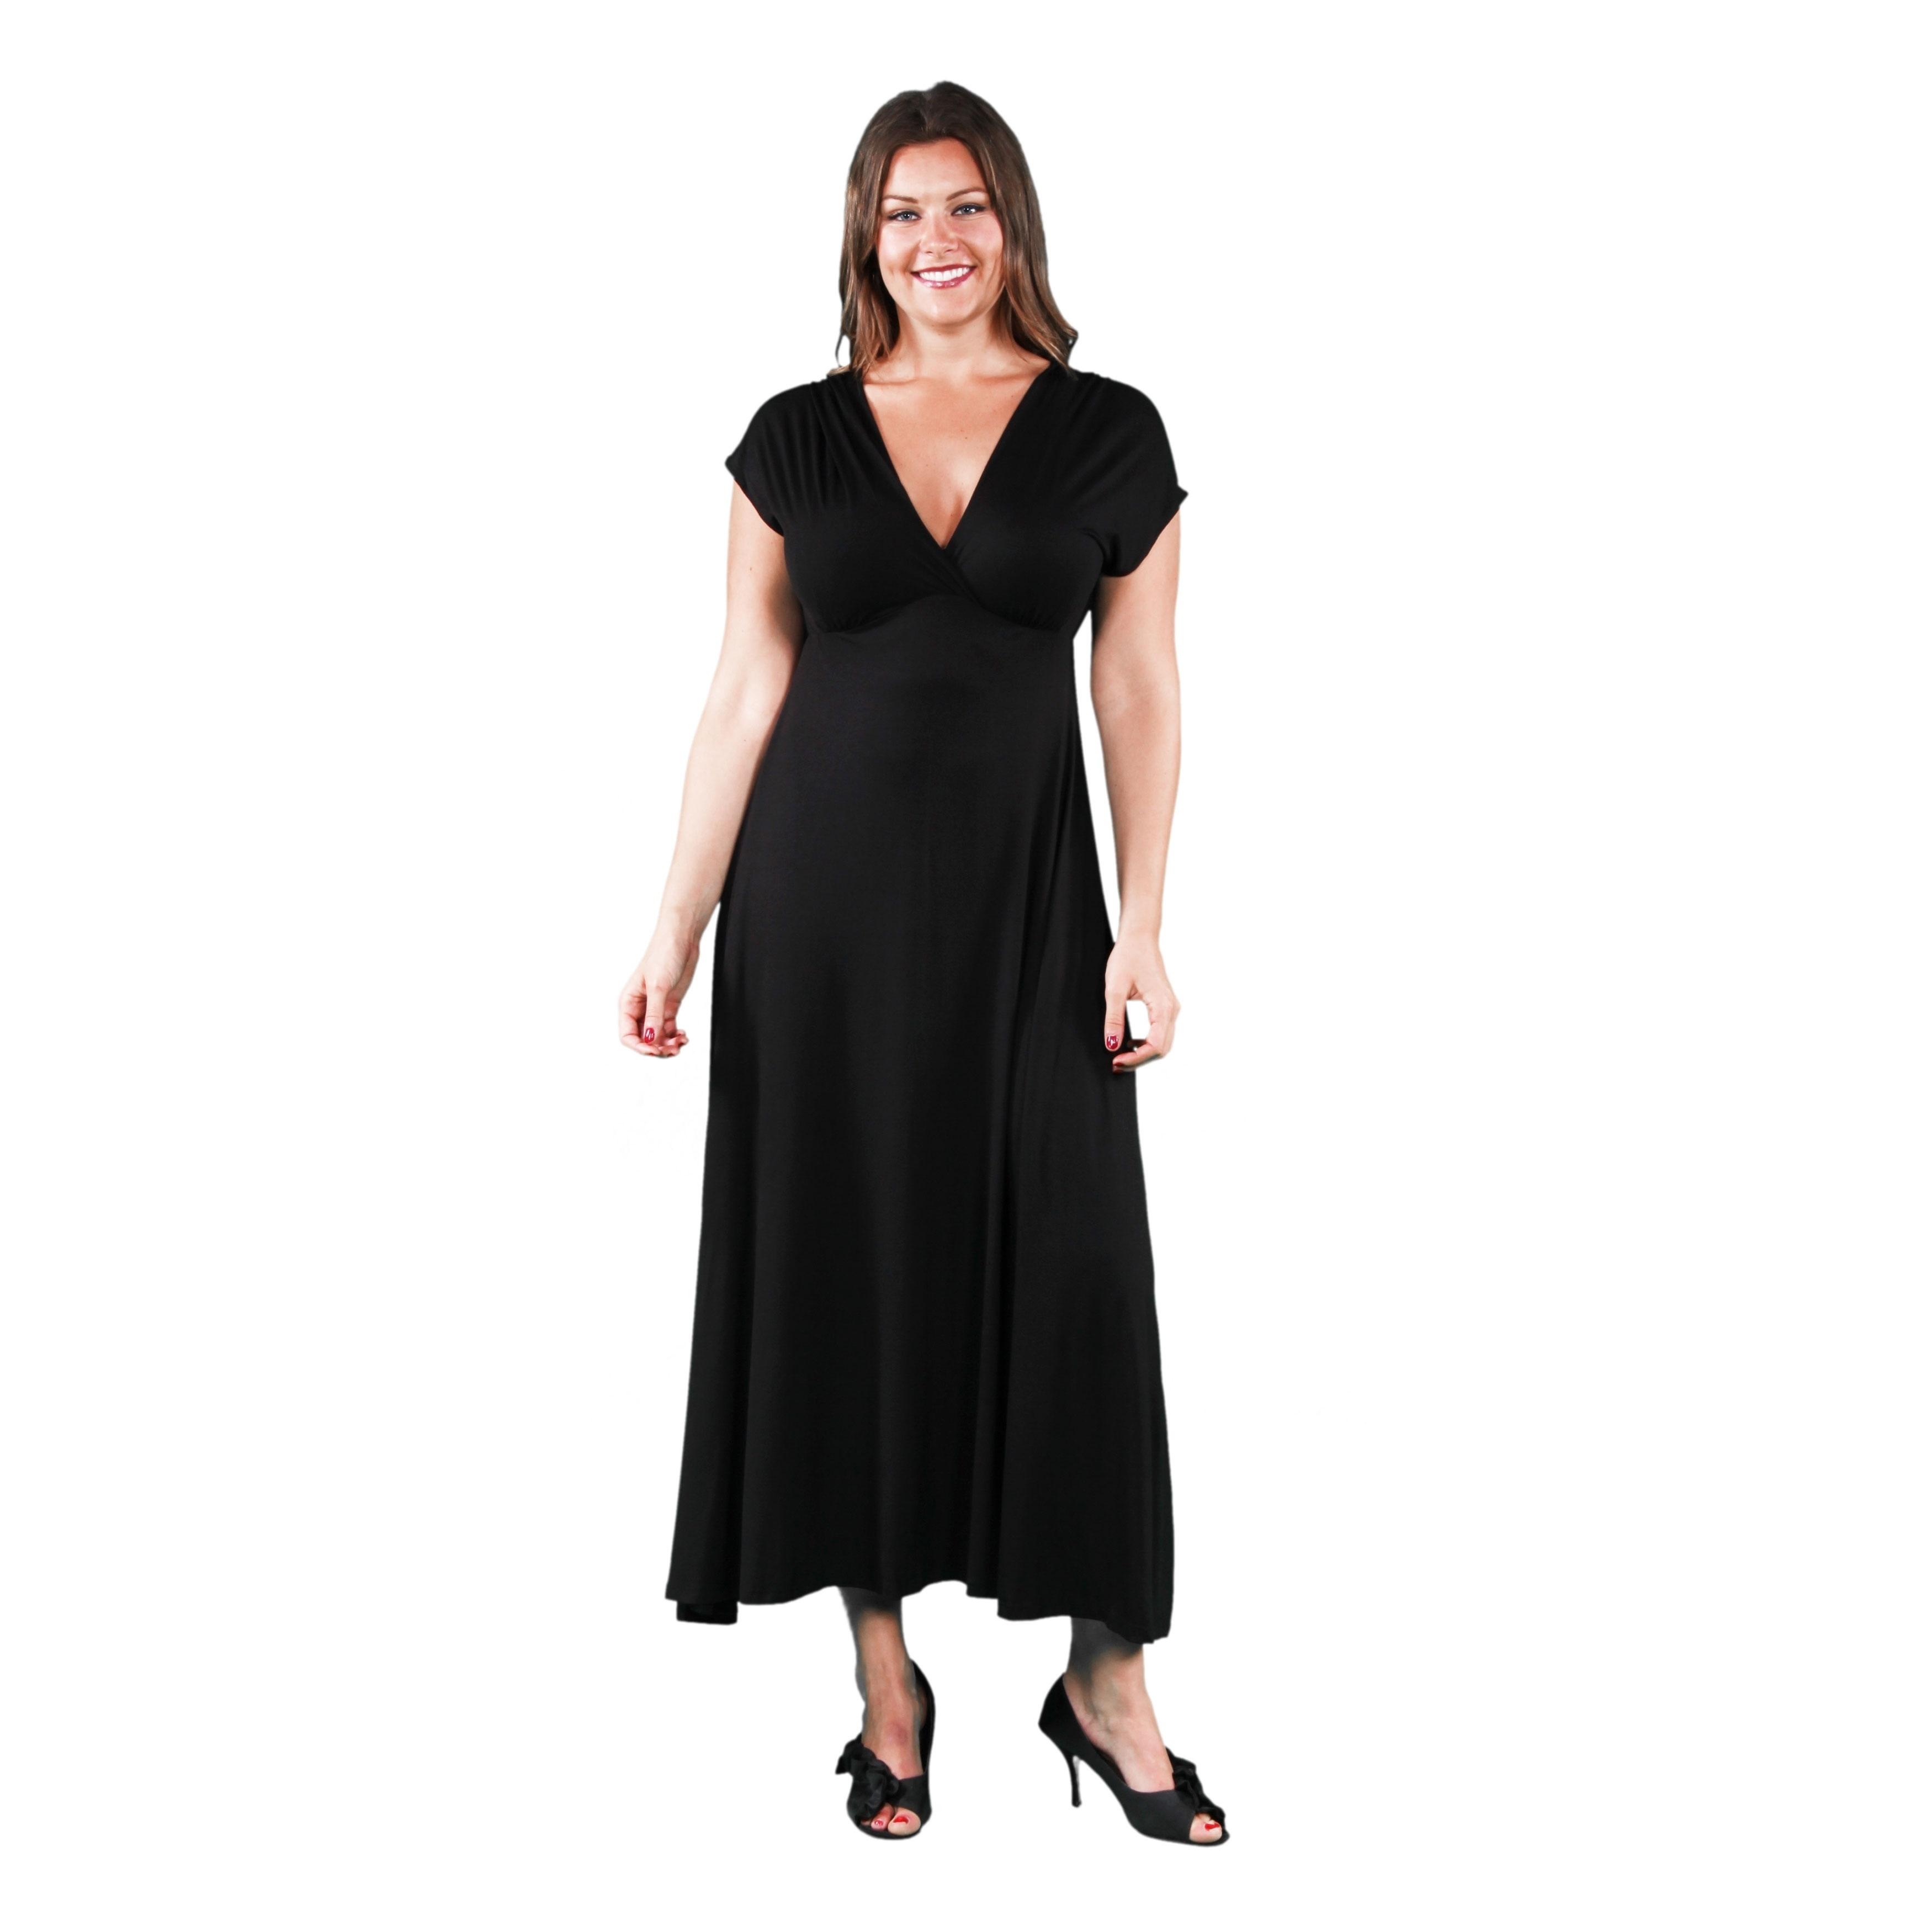 c596532b787 Shop 24seven Comfort Apparel Empire Waist V Neck Plus Size Maxi Dress - On  Sale - Free Shipping On Orders Over  45 - Overstock - 27994897